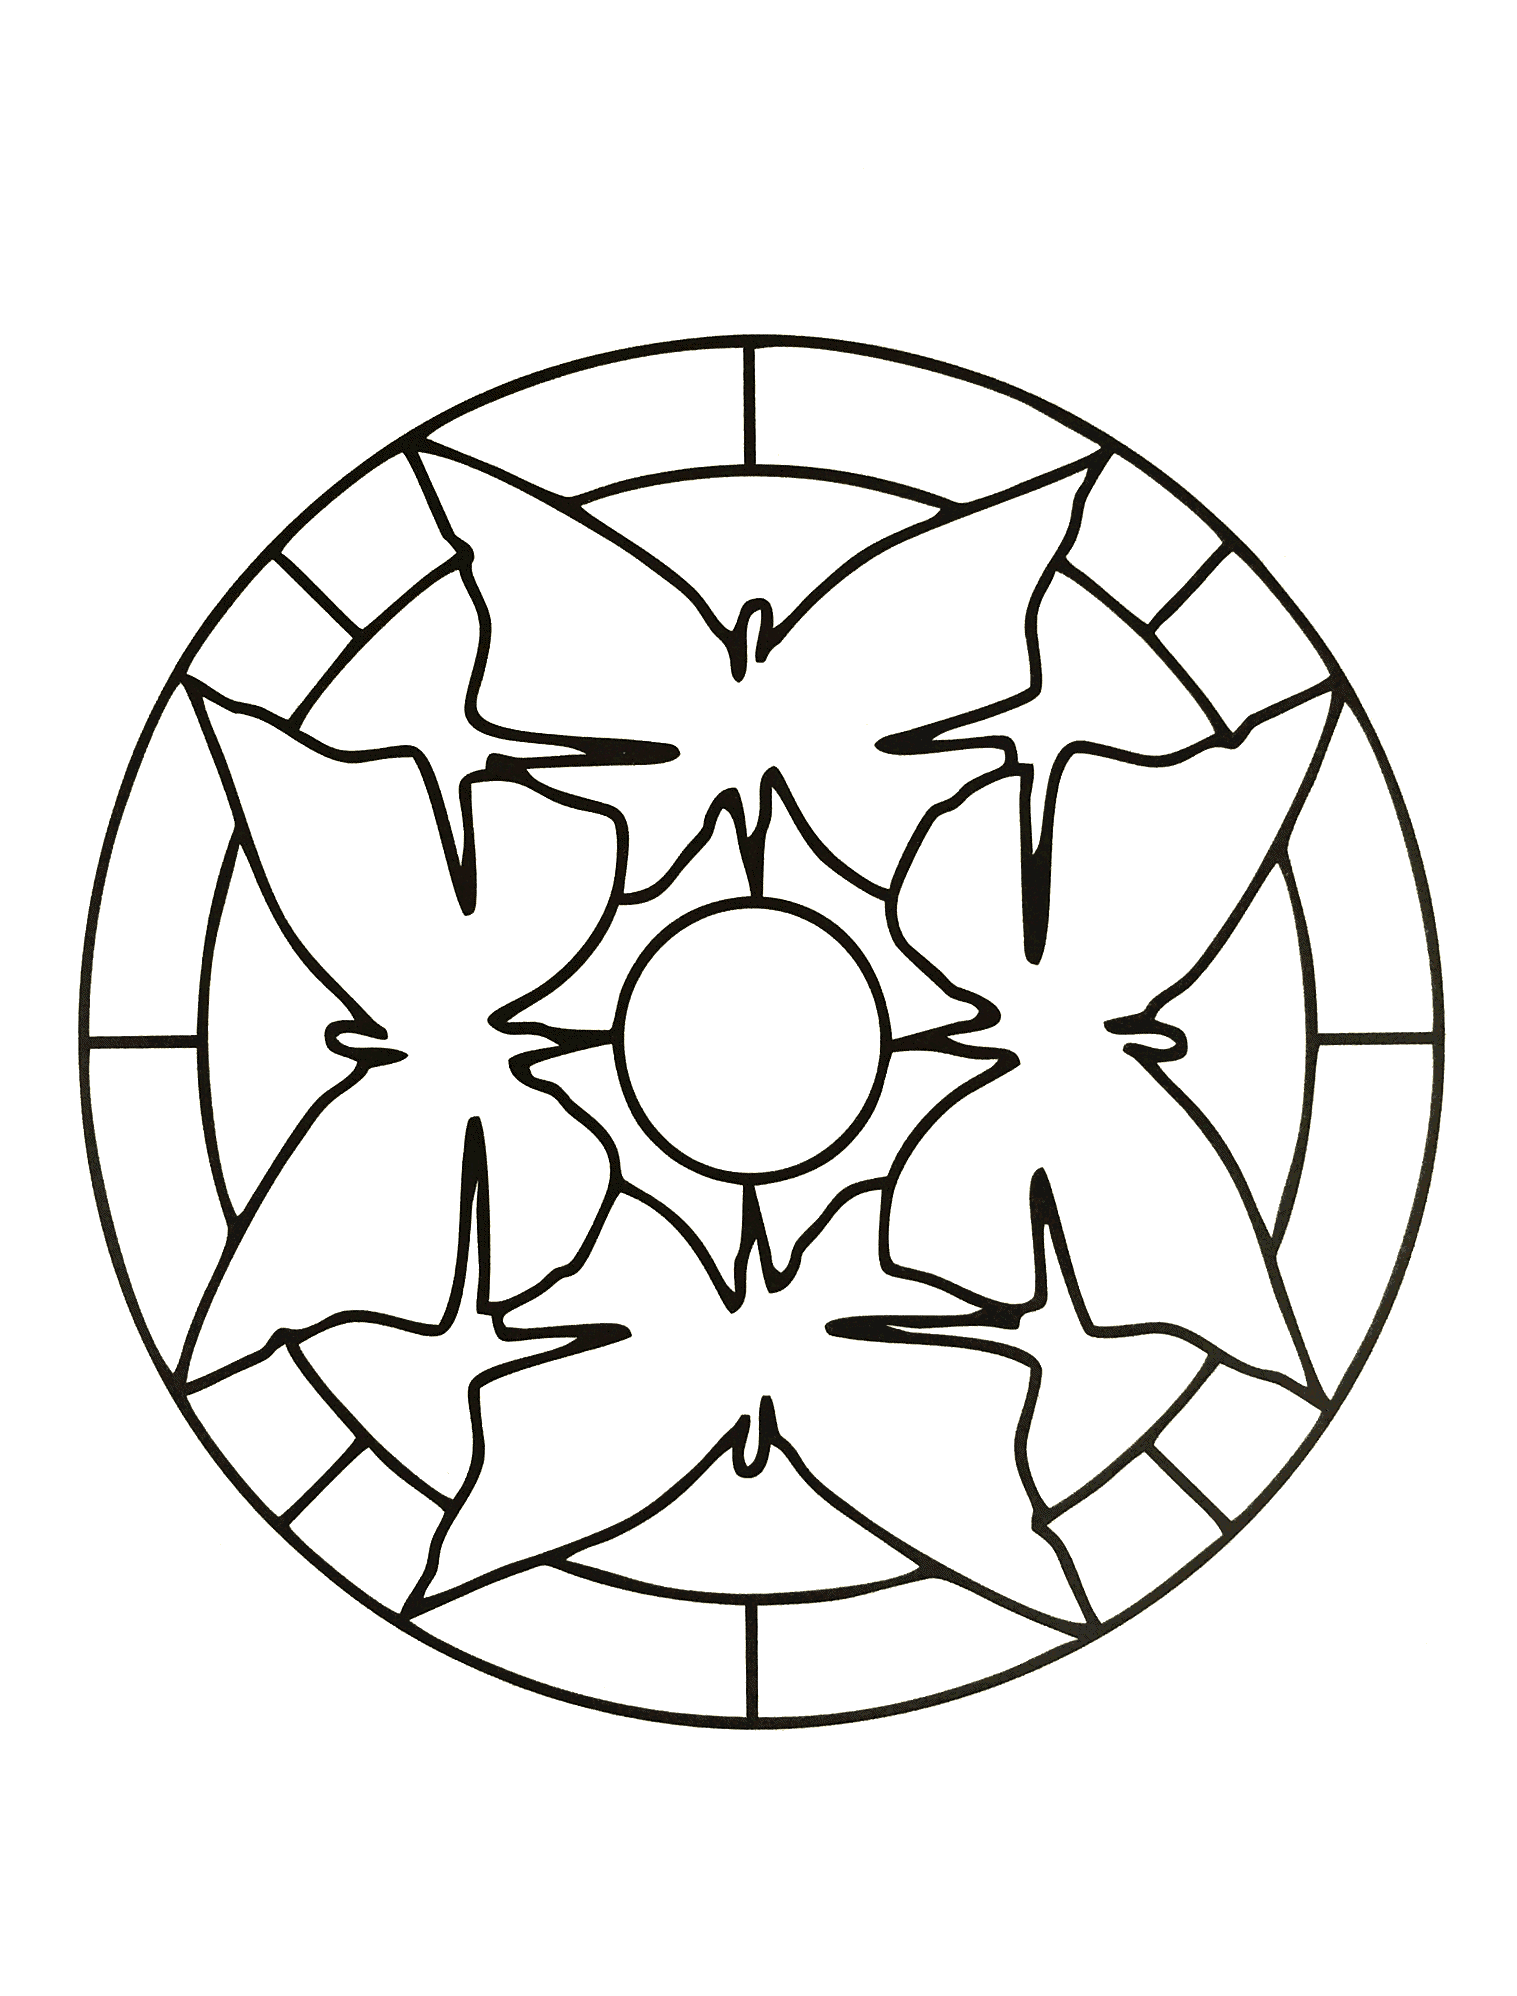 coloring pages for kids simple mandala 35 print - Simple Mandala Coloring Pages